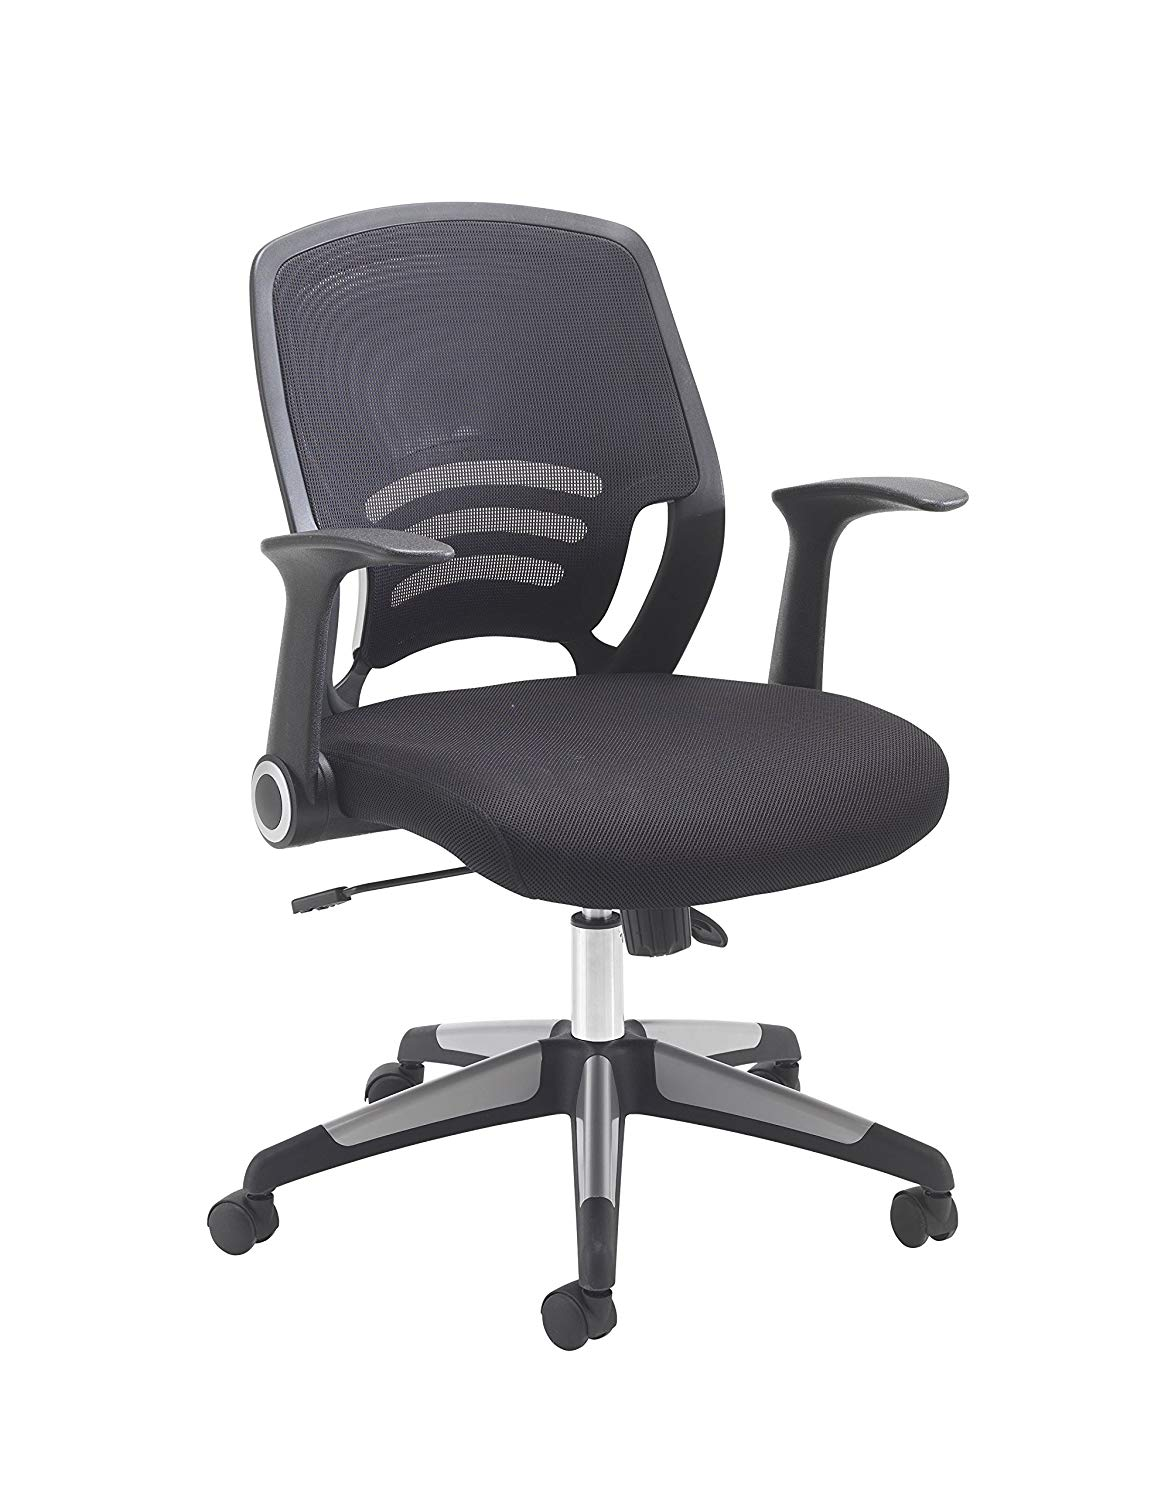 Terrific Office Hippo Mesh Back Chair Ibusinesslaw Wood Chair Design Ideas Ibusinesslaworg